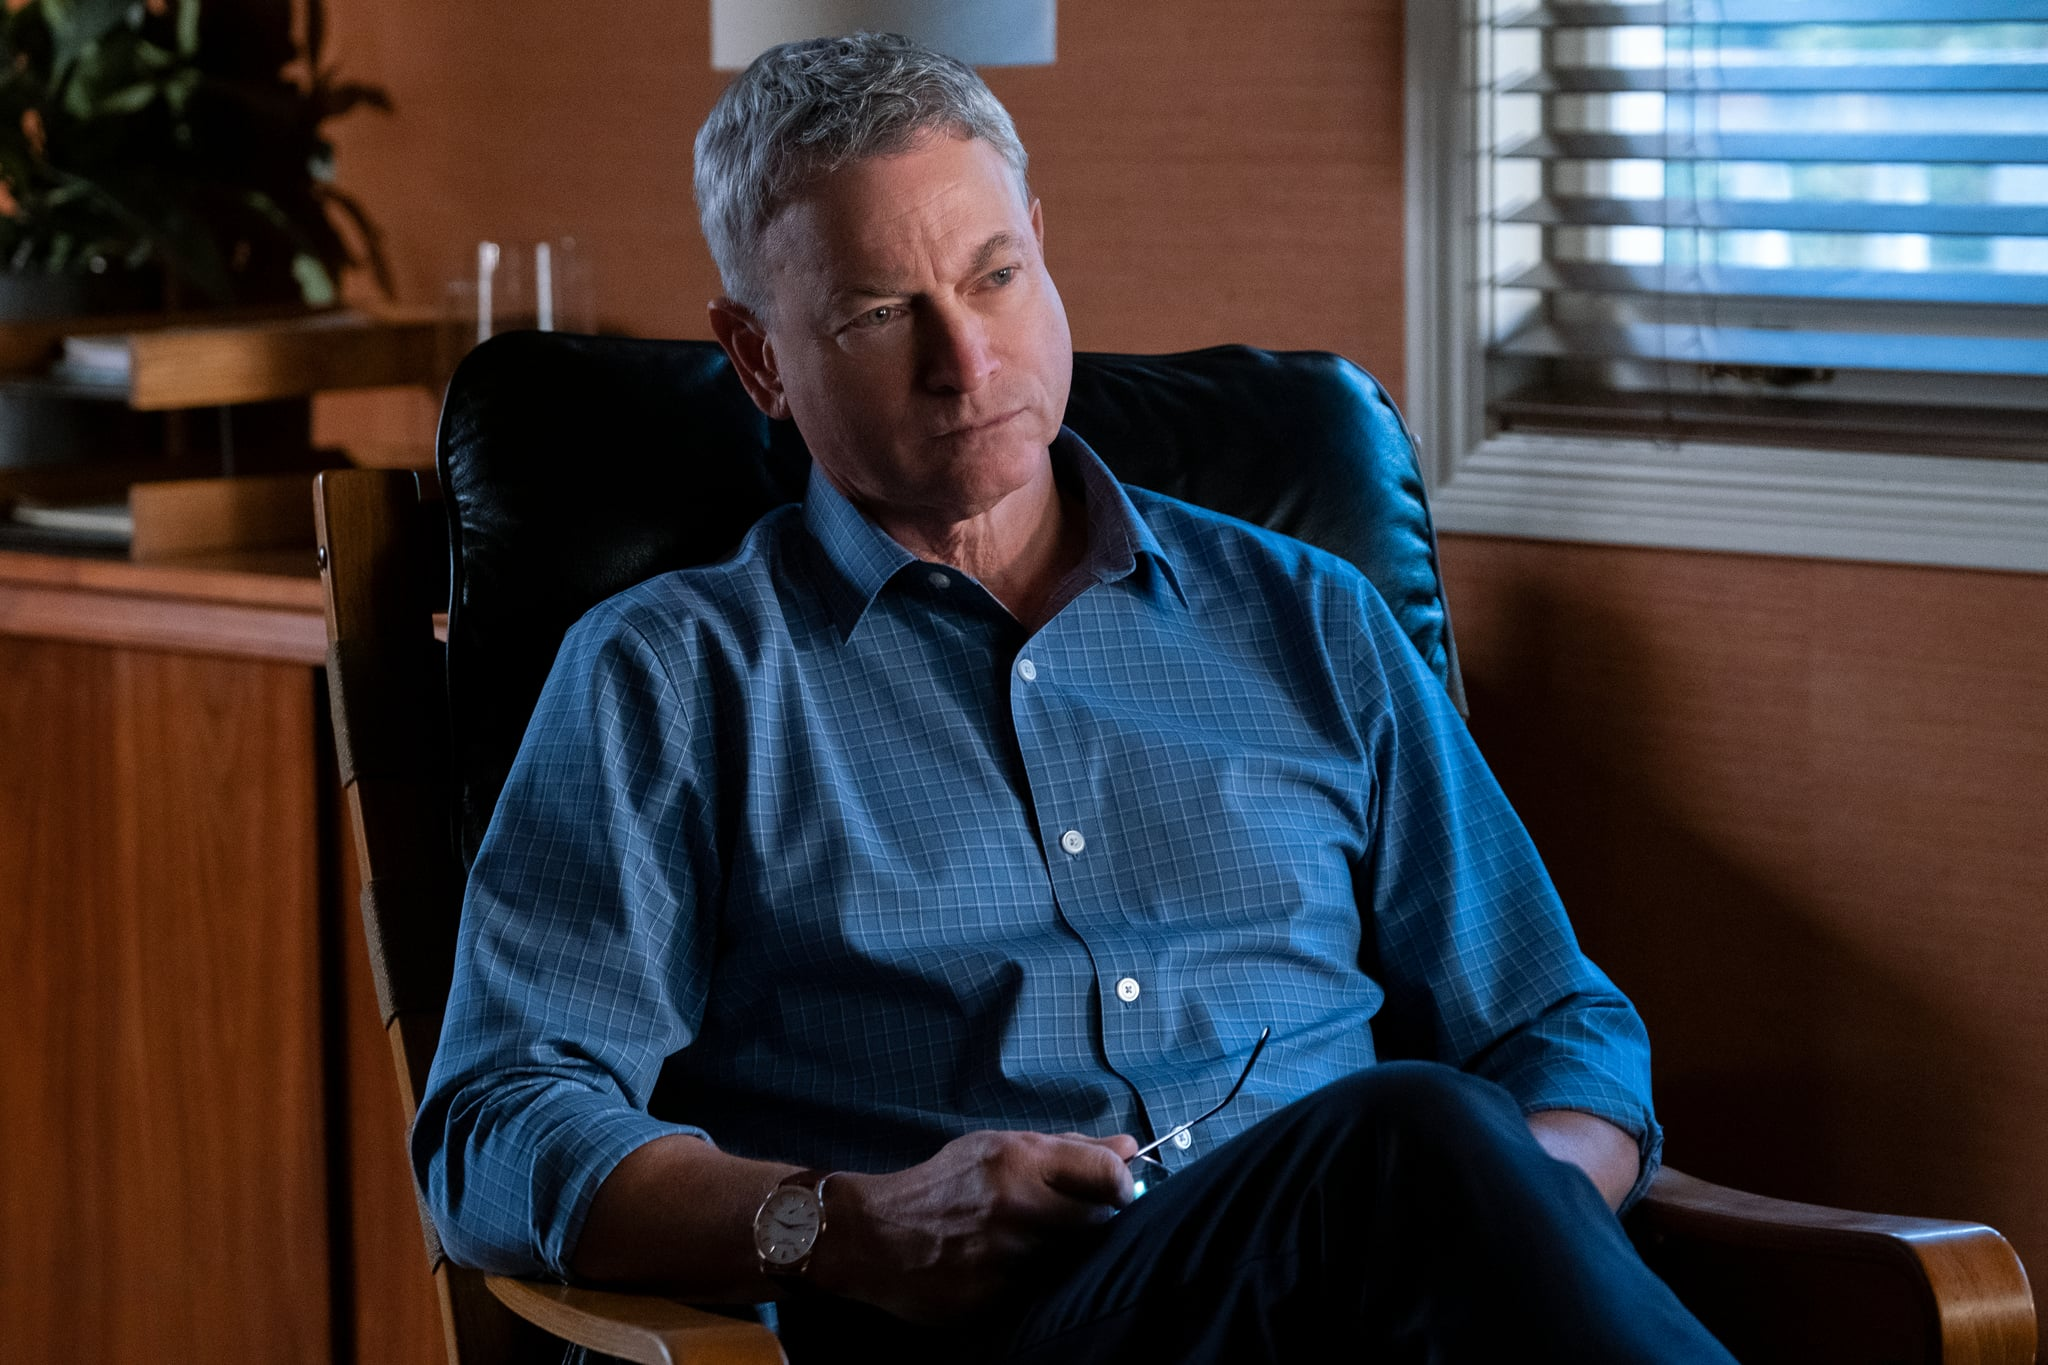 13 REASONS WHY  (L to R) GARY SINISE as DR. ROBERT ELMAN in episode 402 of 13 REASONS WHY  Cr. DAVID MOIR/NETFLIX  2020